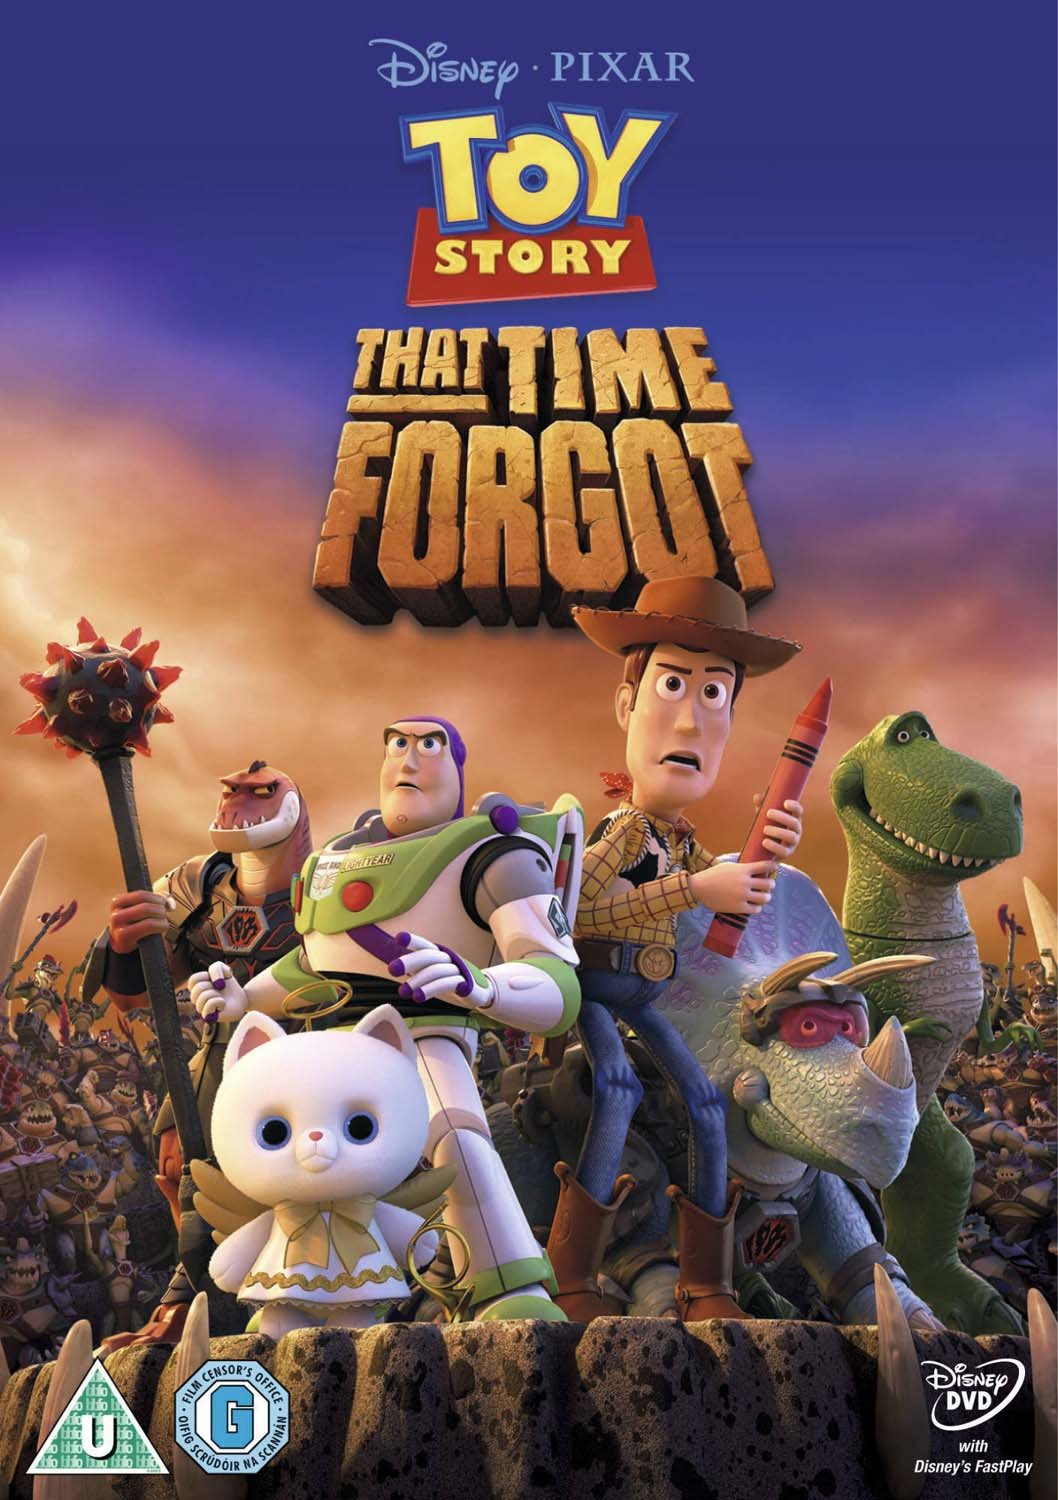 Toy story of terror 1 2 3 buzz lightyear of star command for sale - Toy Story That Time Forgot Dvd Amazon Co Uk Steve Purcell Galyn Susman Dvd Blu Ray